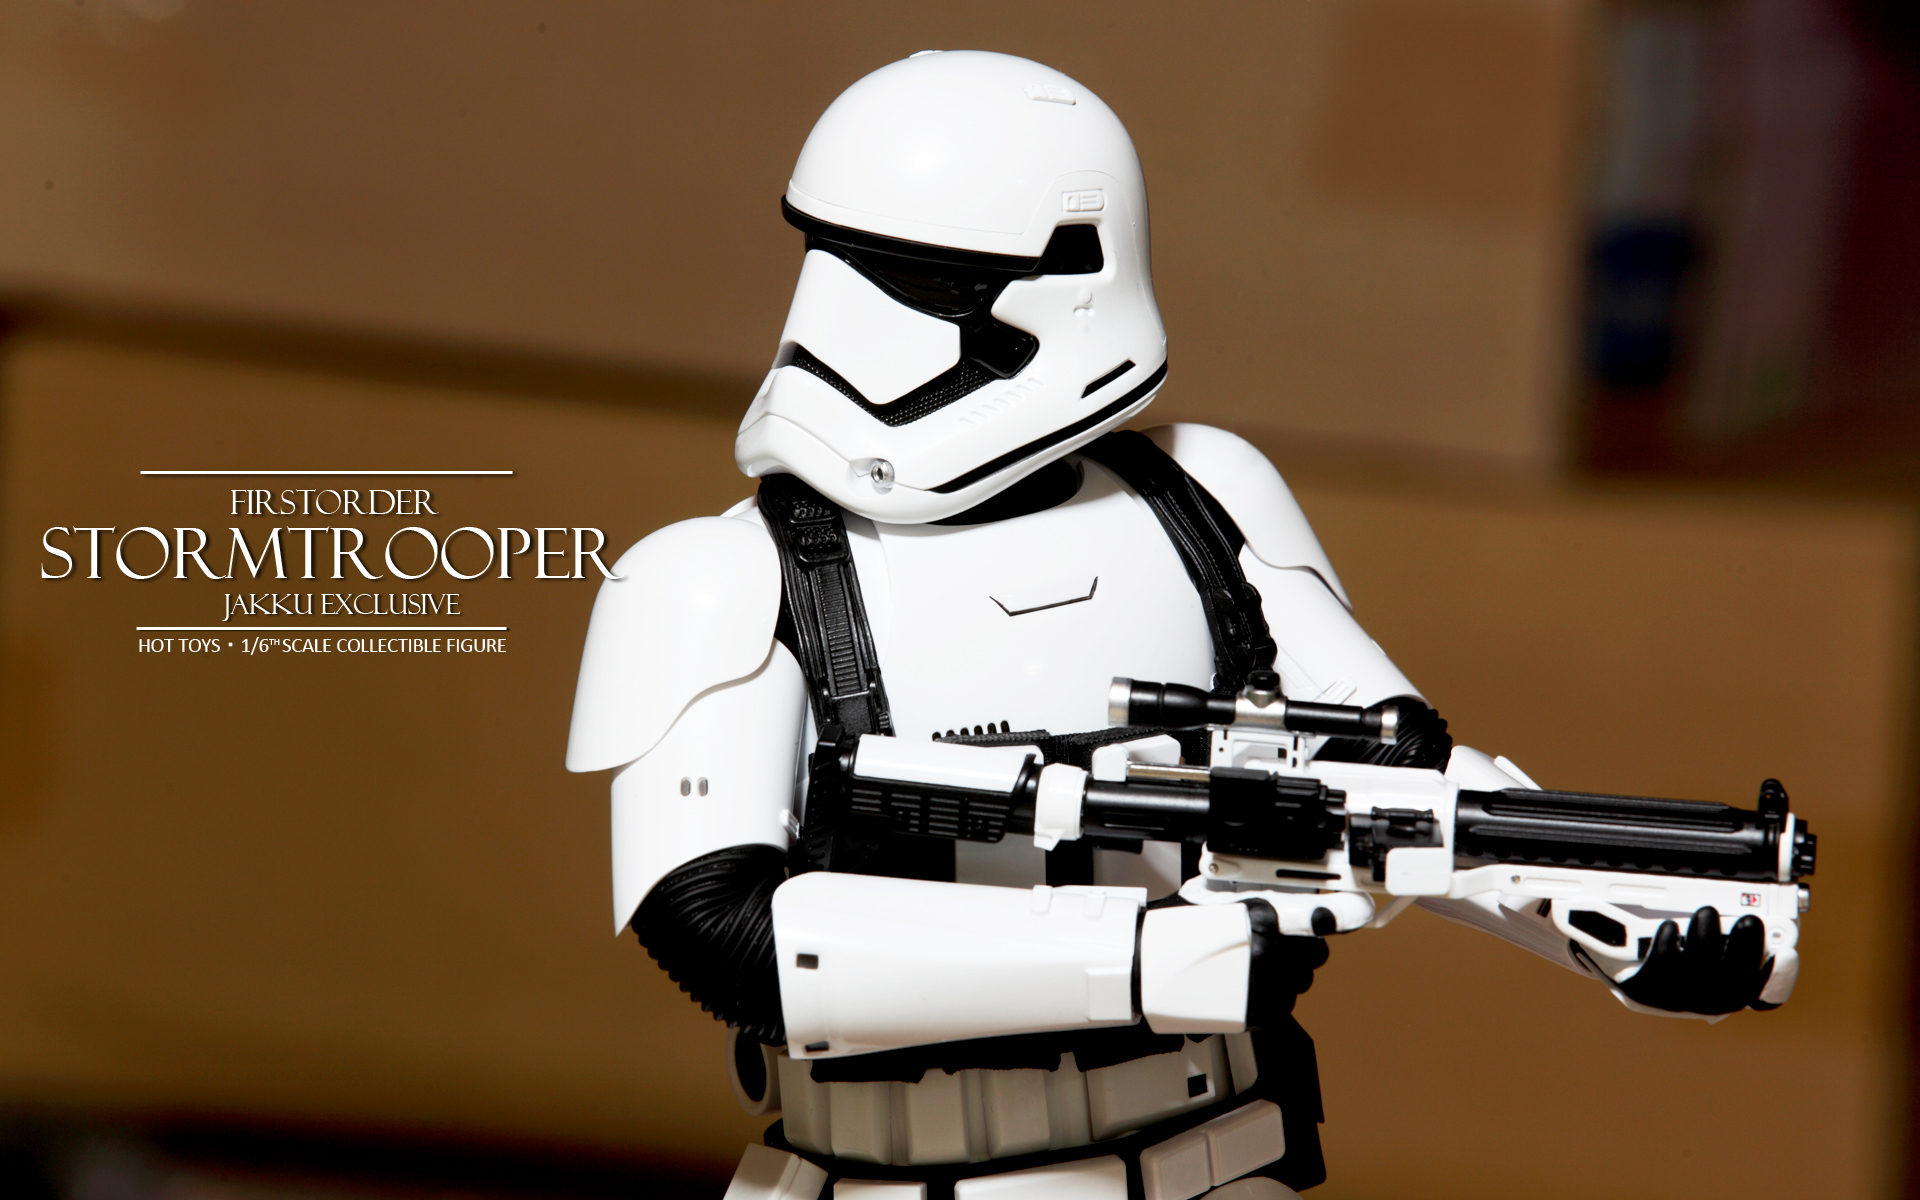 hottoys-star-wars-the-force-awakens-first-order-stormtrooper-jakku-picture05